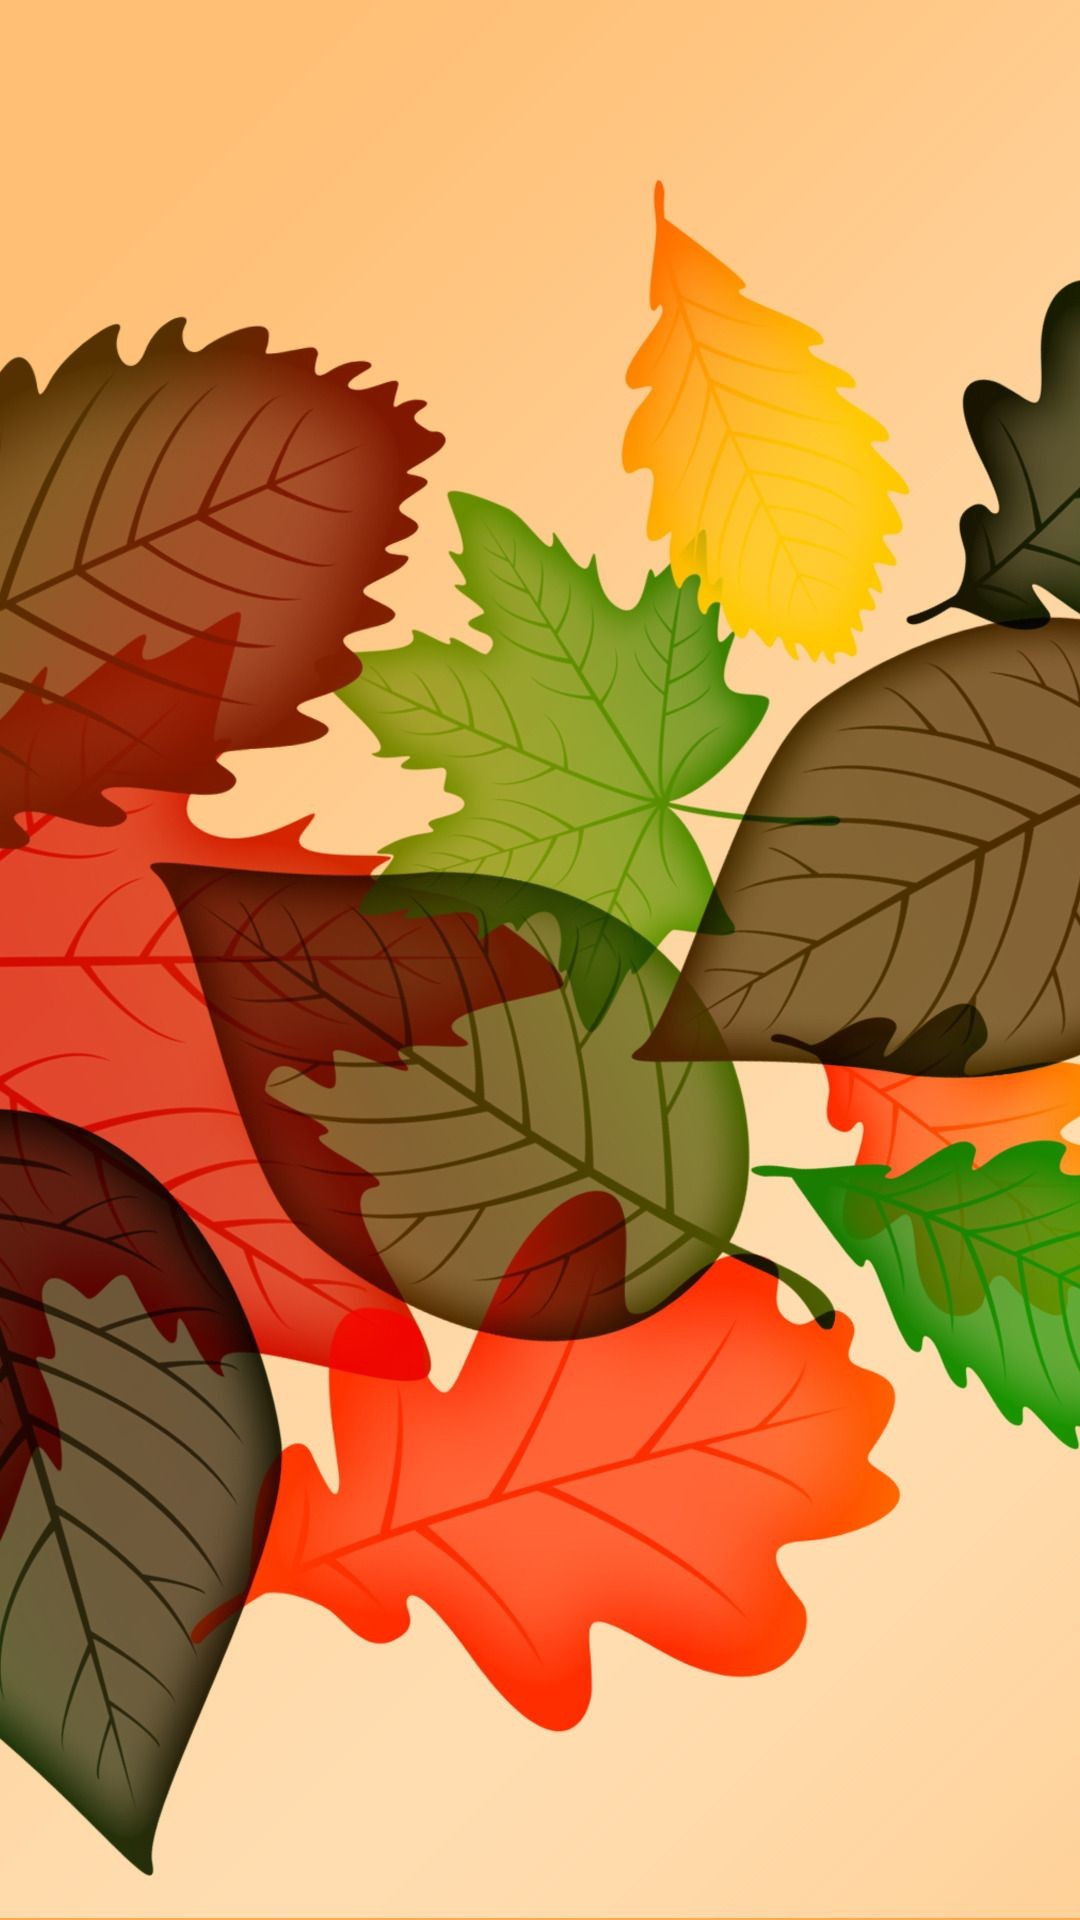 Autumn Leaves – Tap to see more of the top colorful Autumn wallpapers! | @